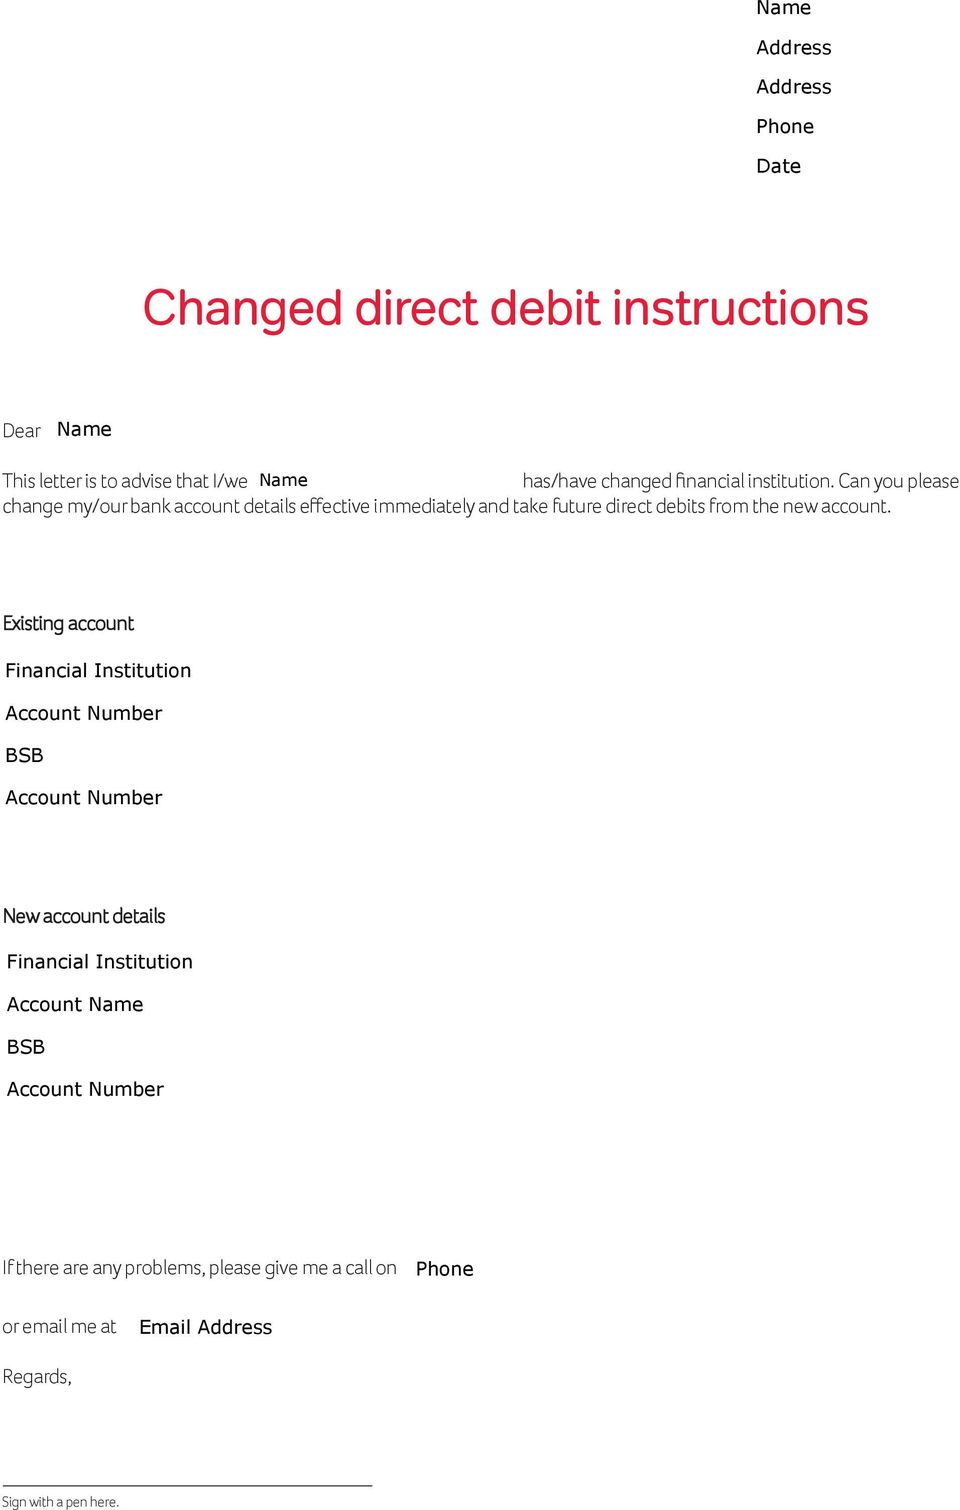 Can you please change my/our bank account details effective immediately and take future direct debits from the new account.